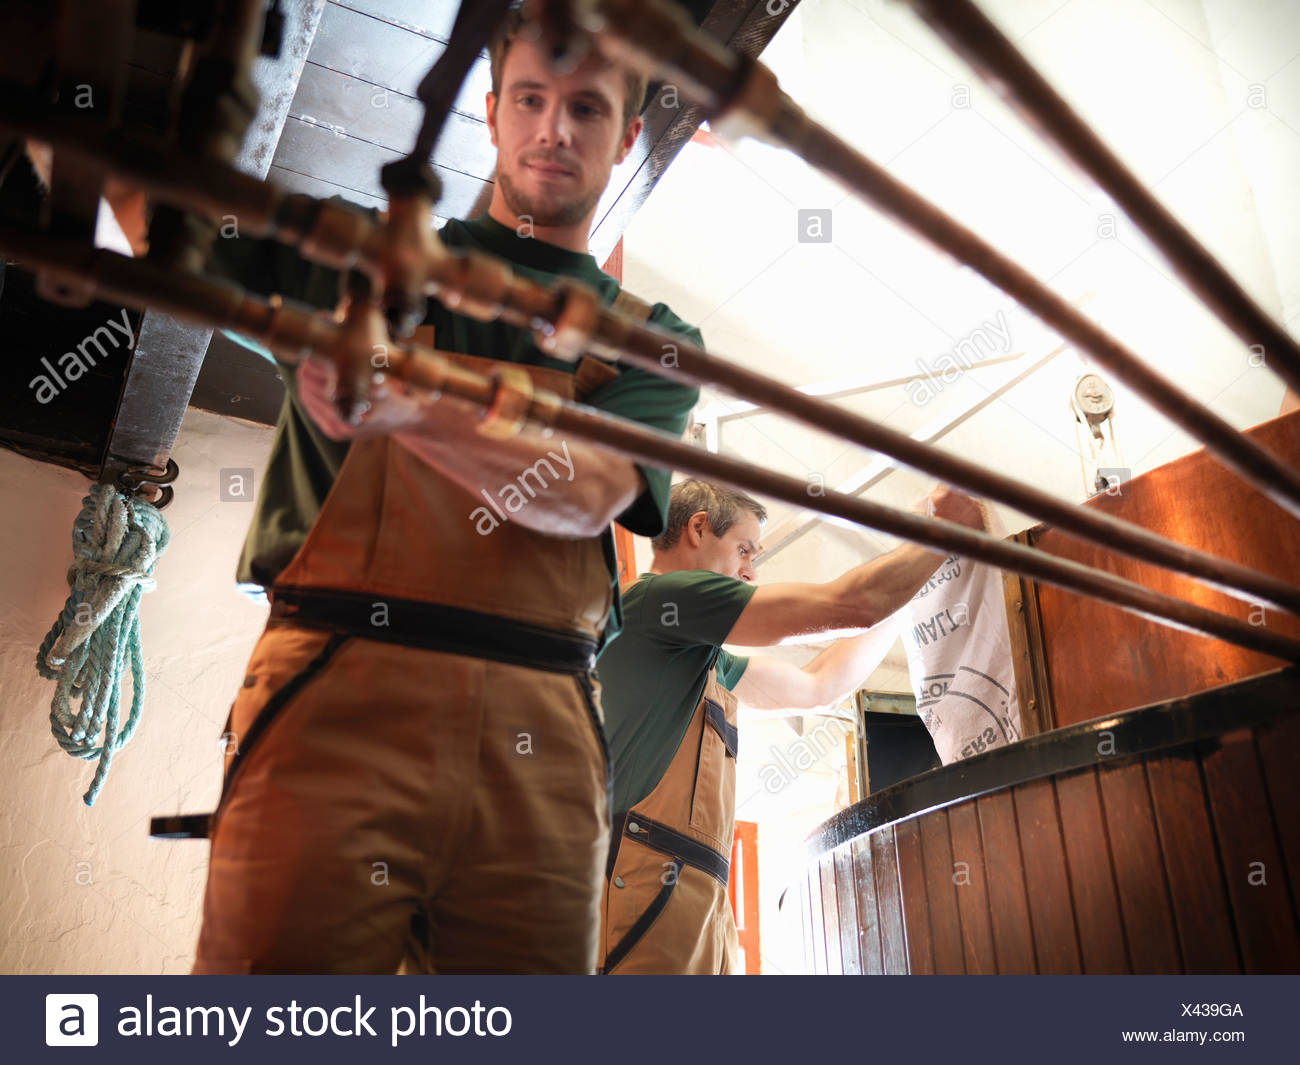 Workers at copper in brewery - Stock Image